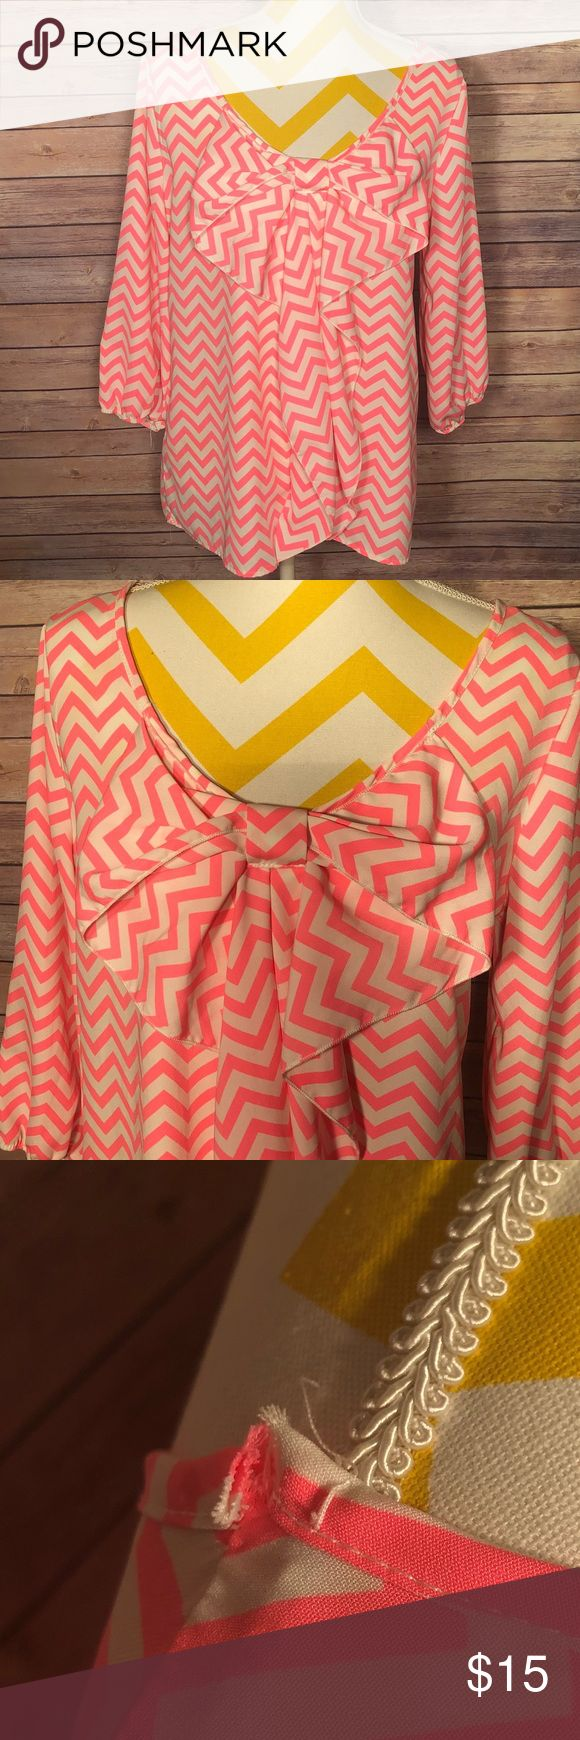 "Pink && white chevron bow blouse Preloved 🎀 in good condition   No stains or major snags - small snag on the right shoulder Elastic ""wrists"" in sleeve - only goes down slightly past elbow   📬SHIPPED WITHIN 24 HOURS OF PURCHASE 📬    💌 USUALLY THE FOLLOWING MORNING 💌    ⛔️ NO TRADES ⛔️    🐾 PET FRIENDLY HOME 🐾 Auditions Tops Blouses"